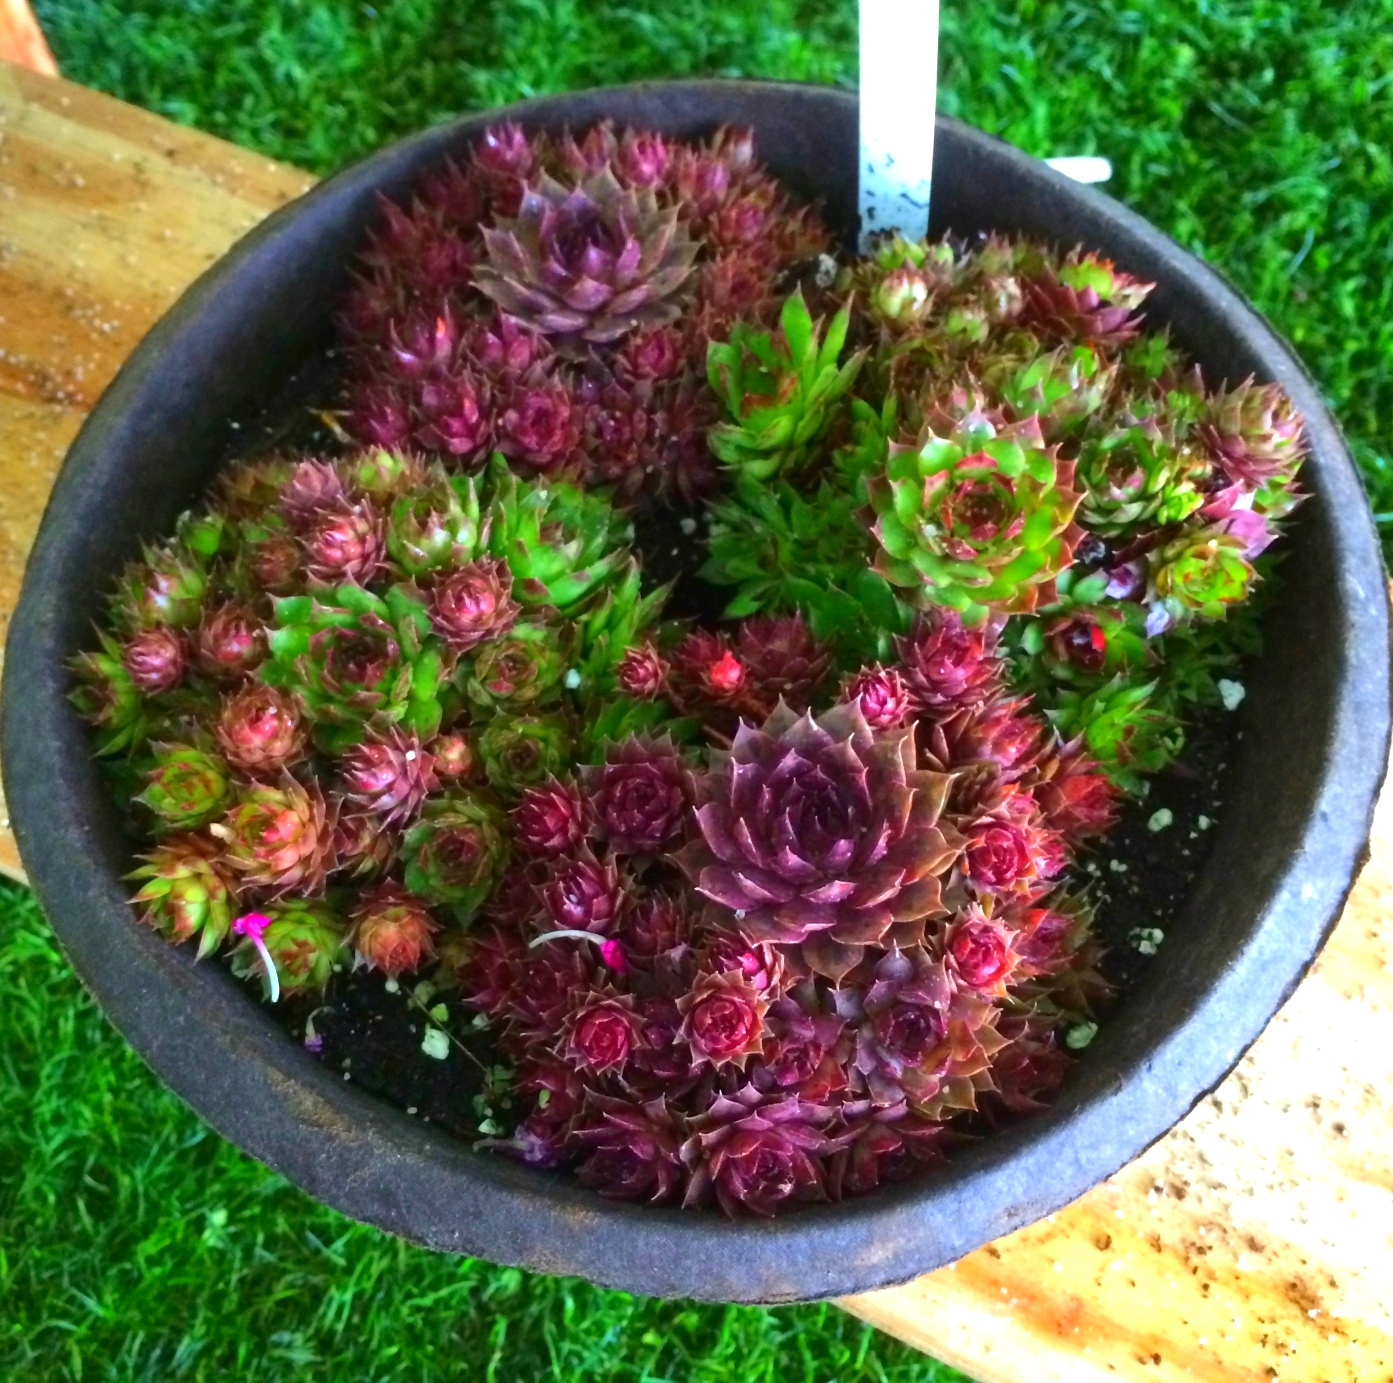 a big bowl of hens and chicks.